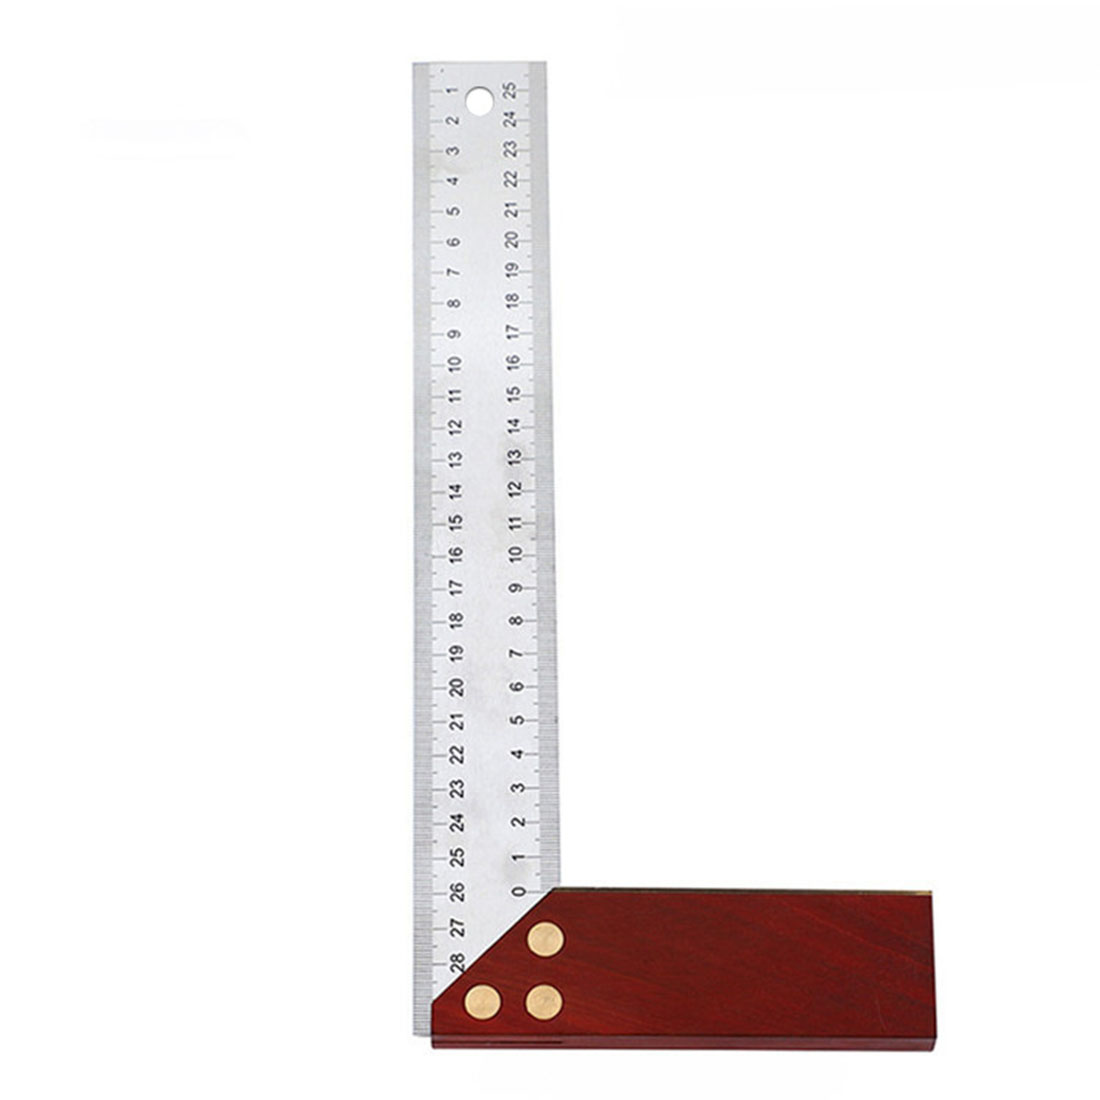 300mm 45/90 Degree Gauge Right Angle Ruler Stainless Steel Measuring Replacement Measurement And Analysis Instruments